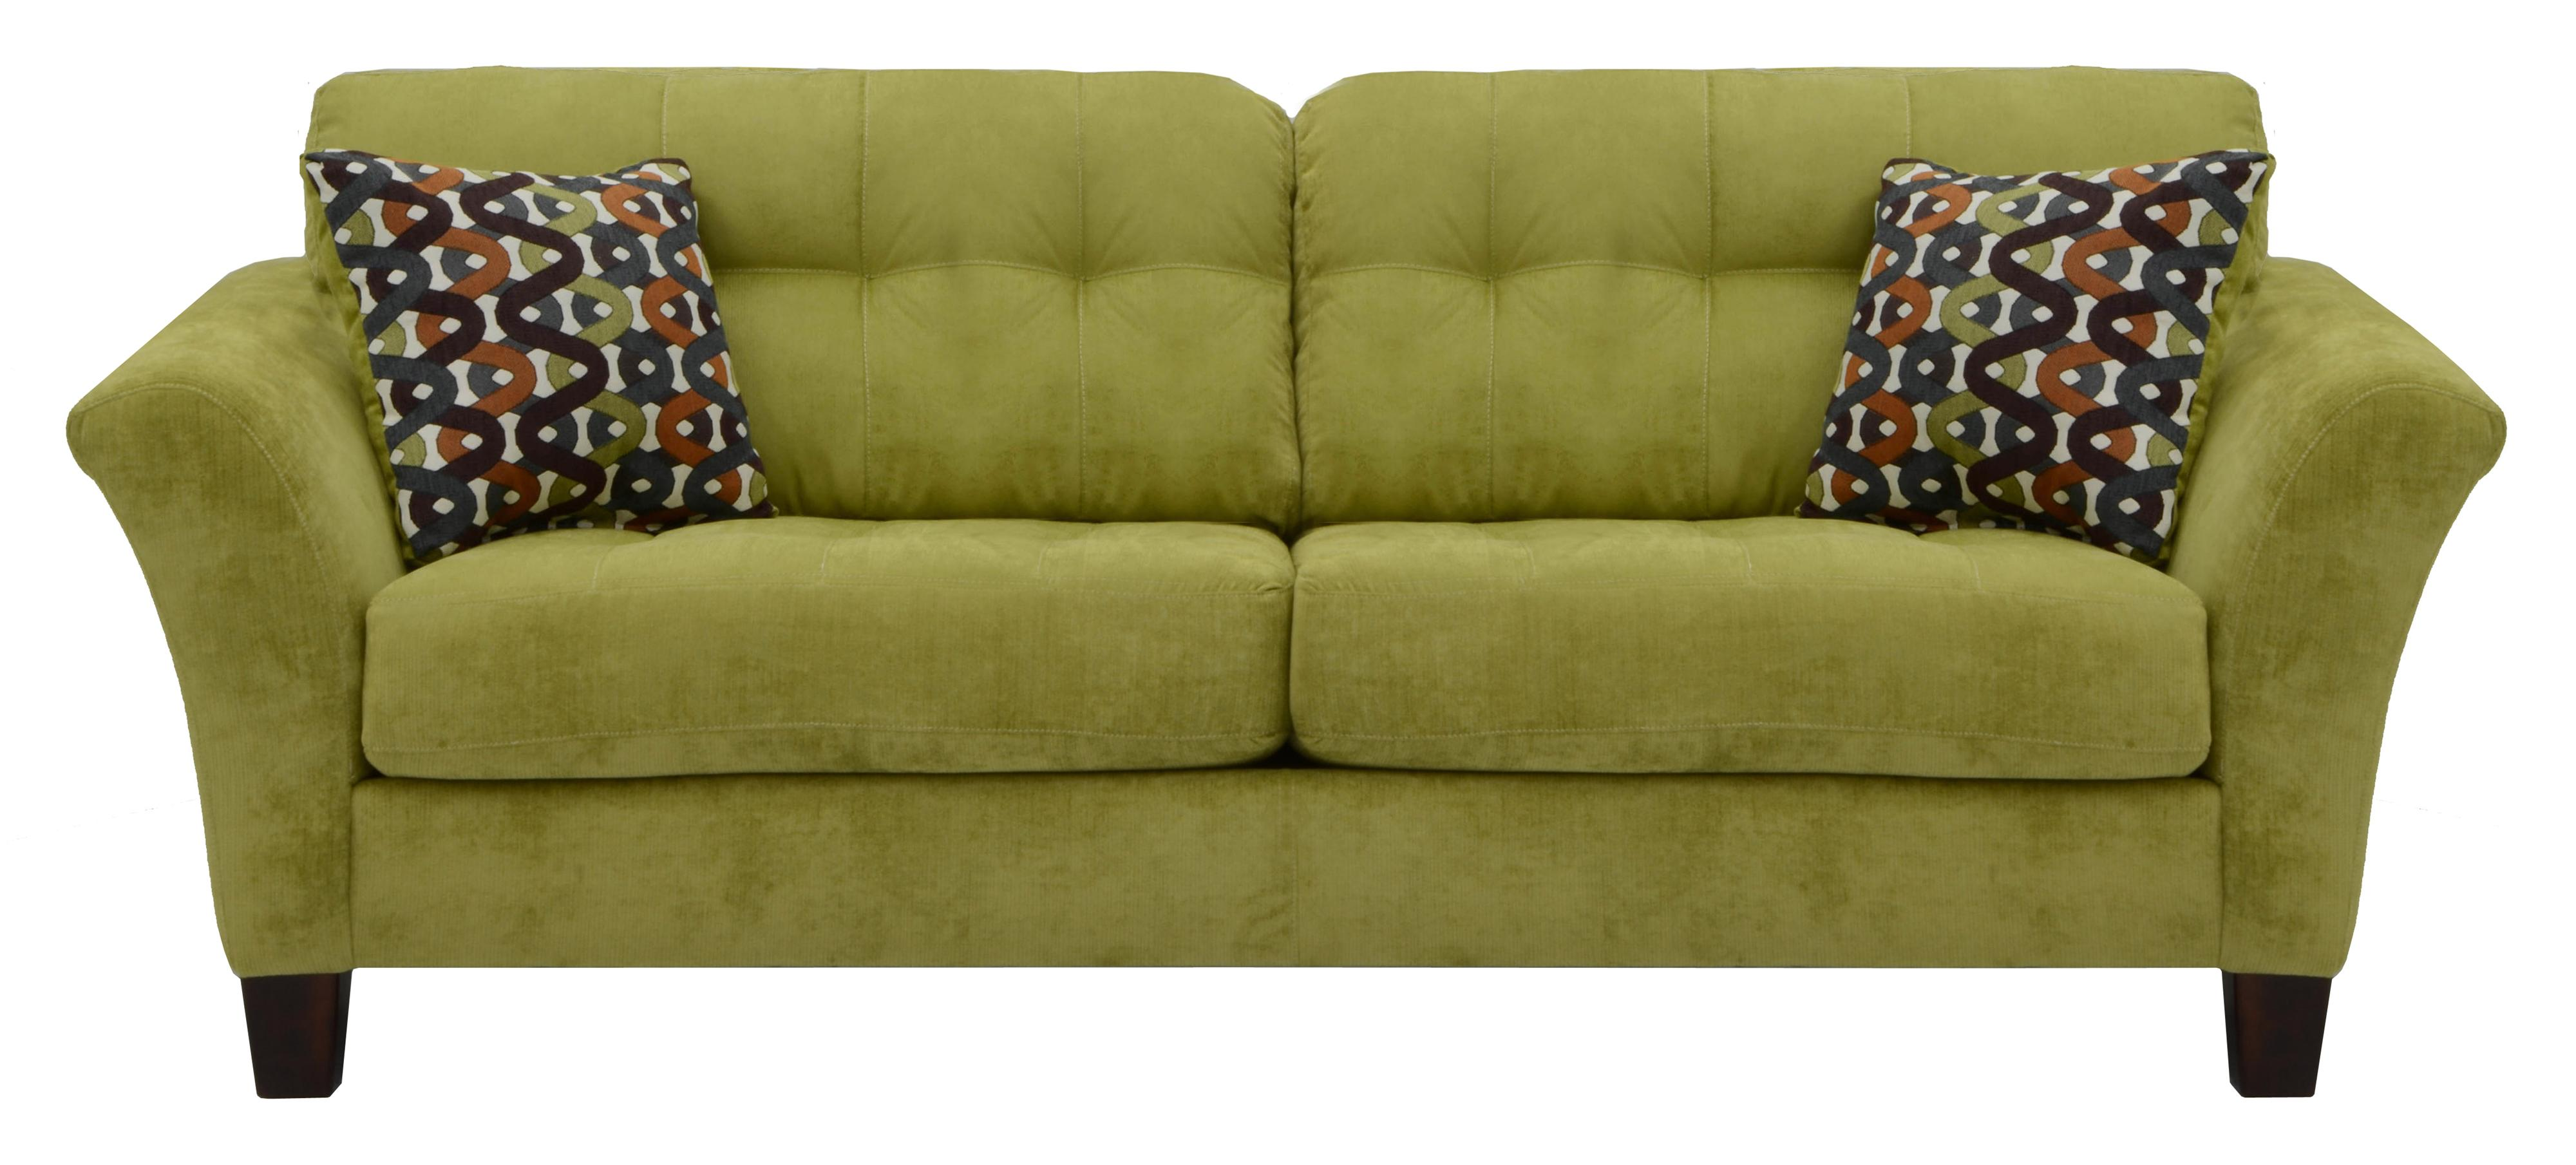 sofa with 2 seats and tufted back cushions by jackson. Black Bedroom Furniture Sets. Home Design Ideas